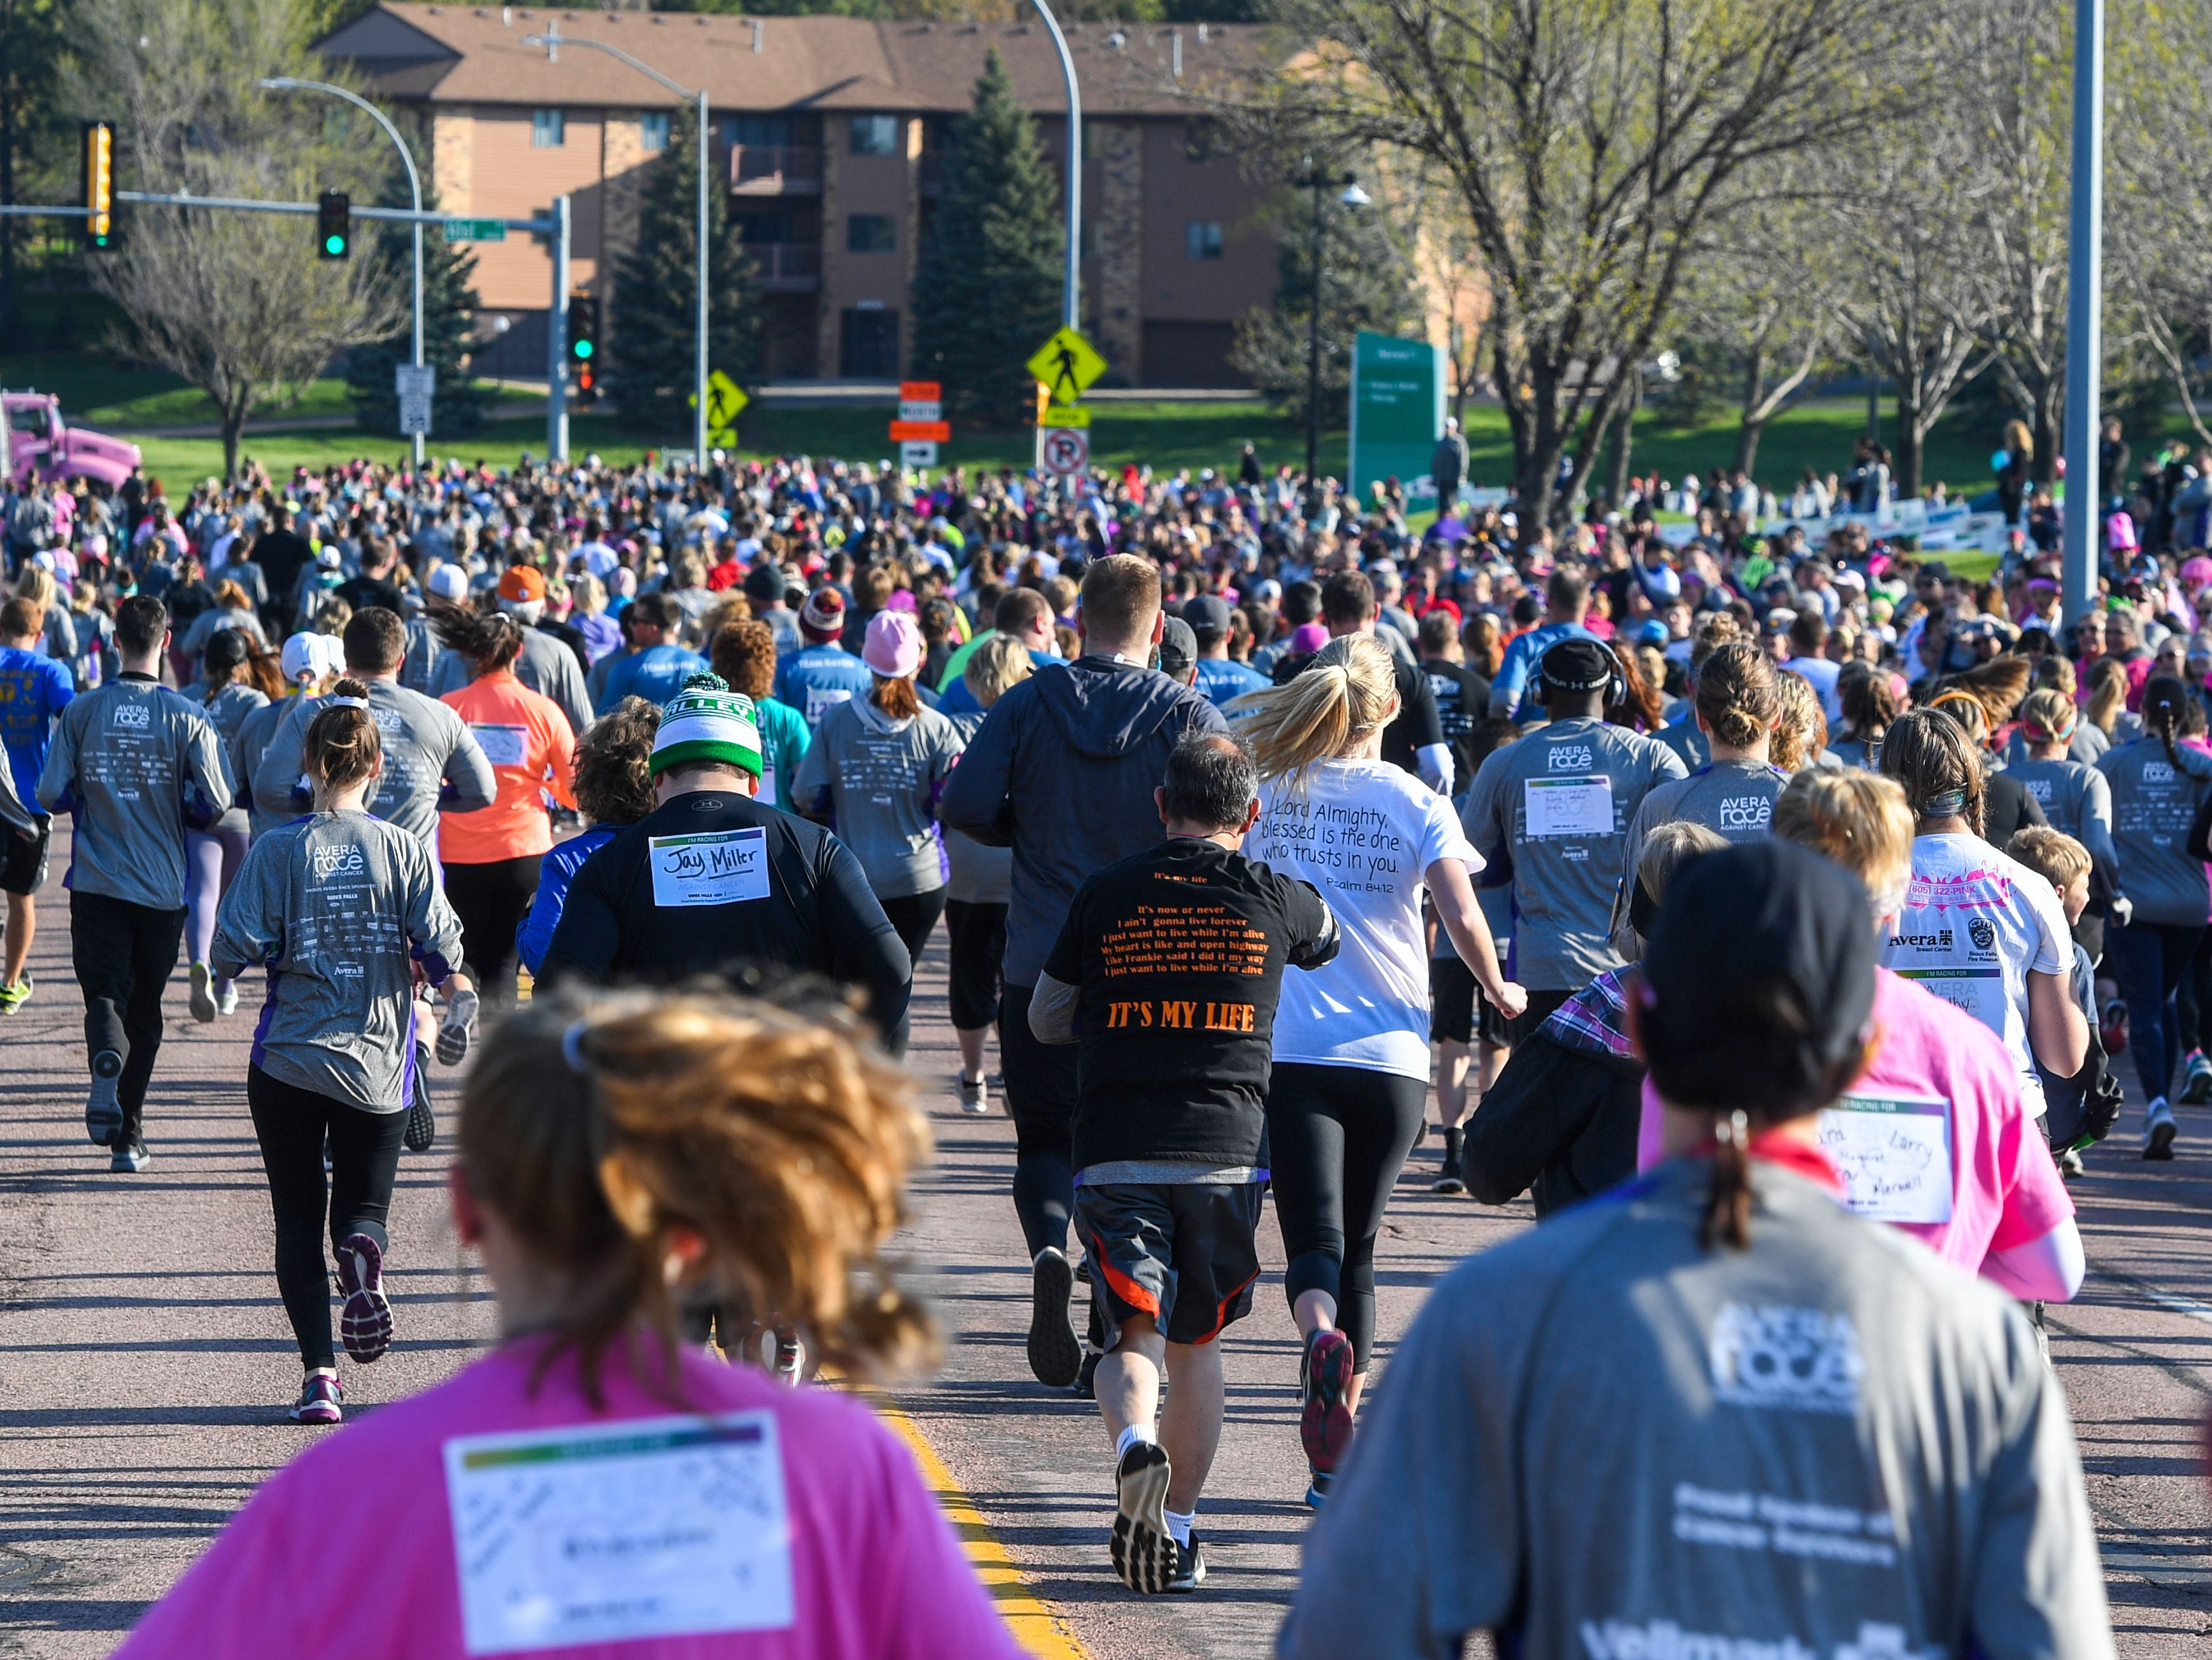 5K runners head north from the event site for the 31st Avera Health Race Against Cancer on Saturday morning, May 11, in Sioux Falls.